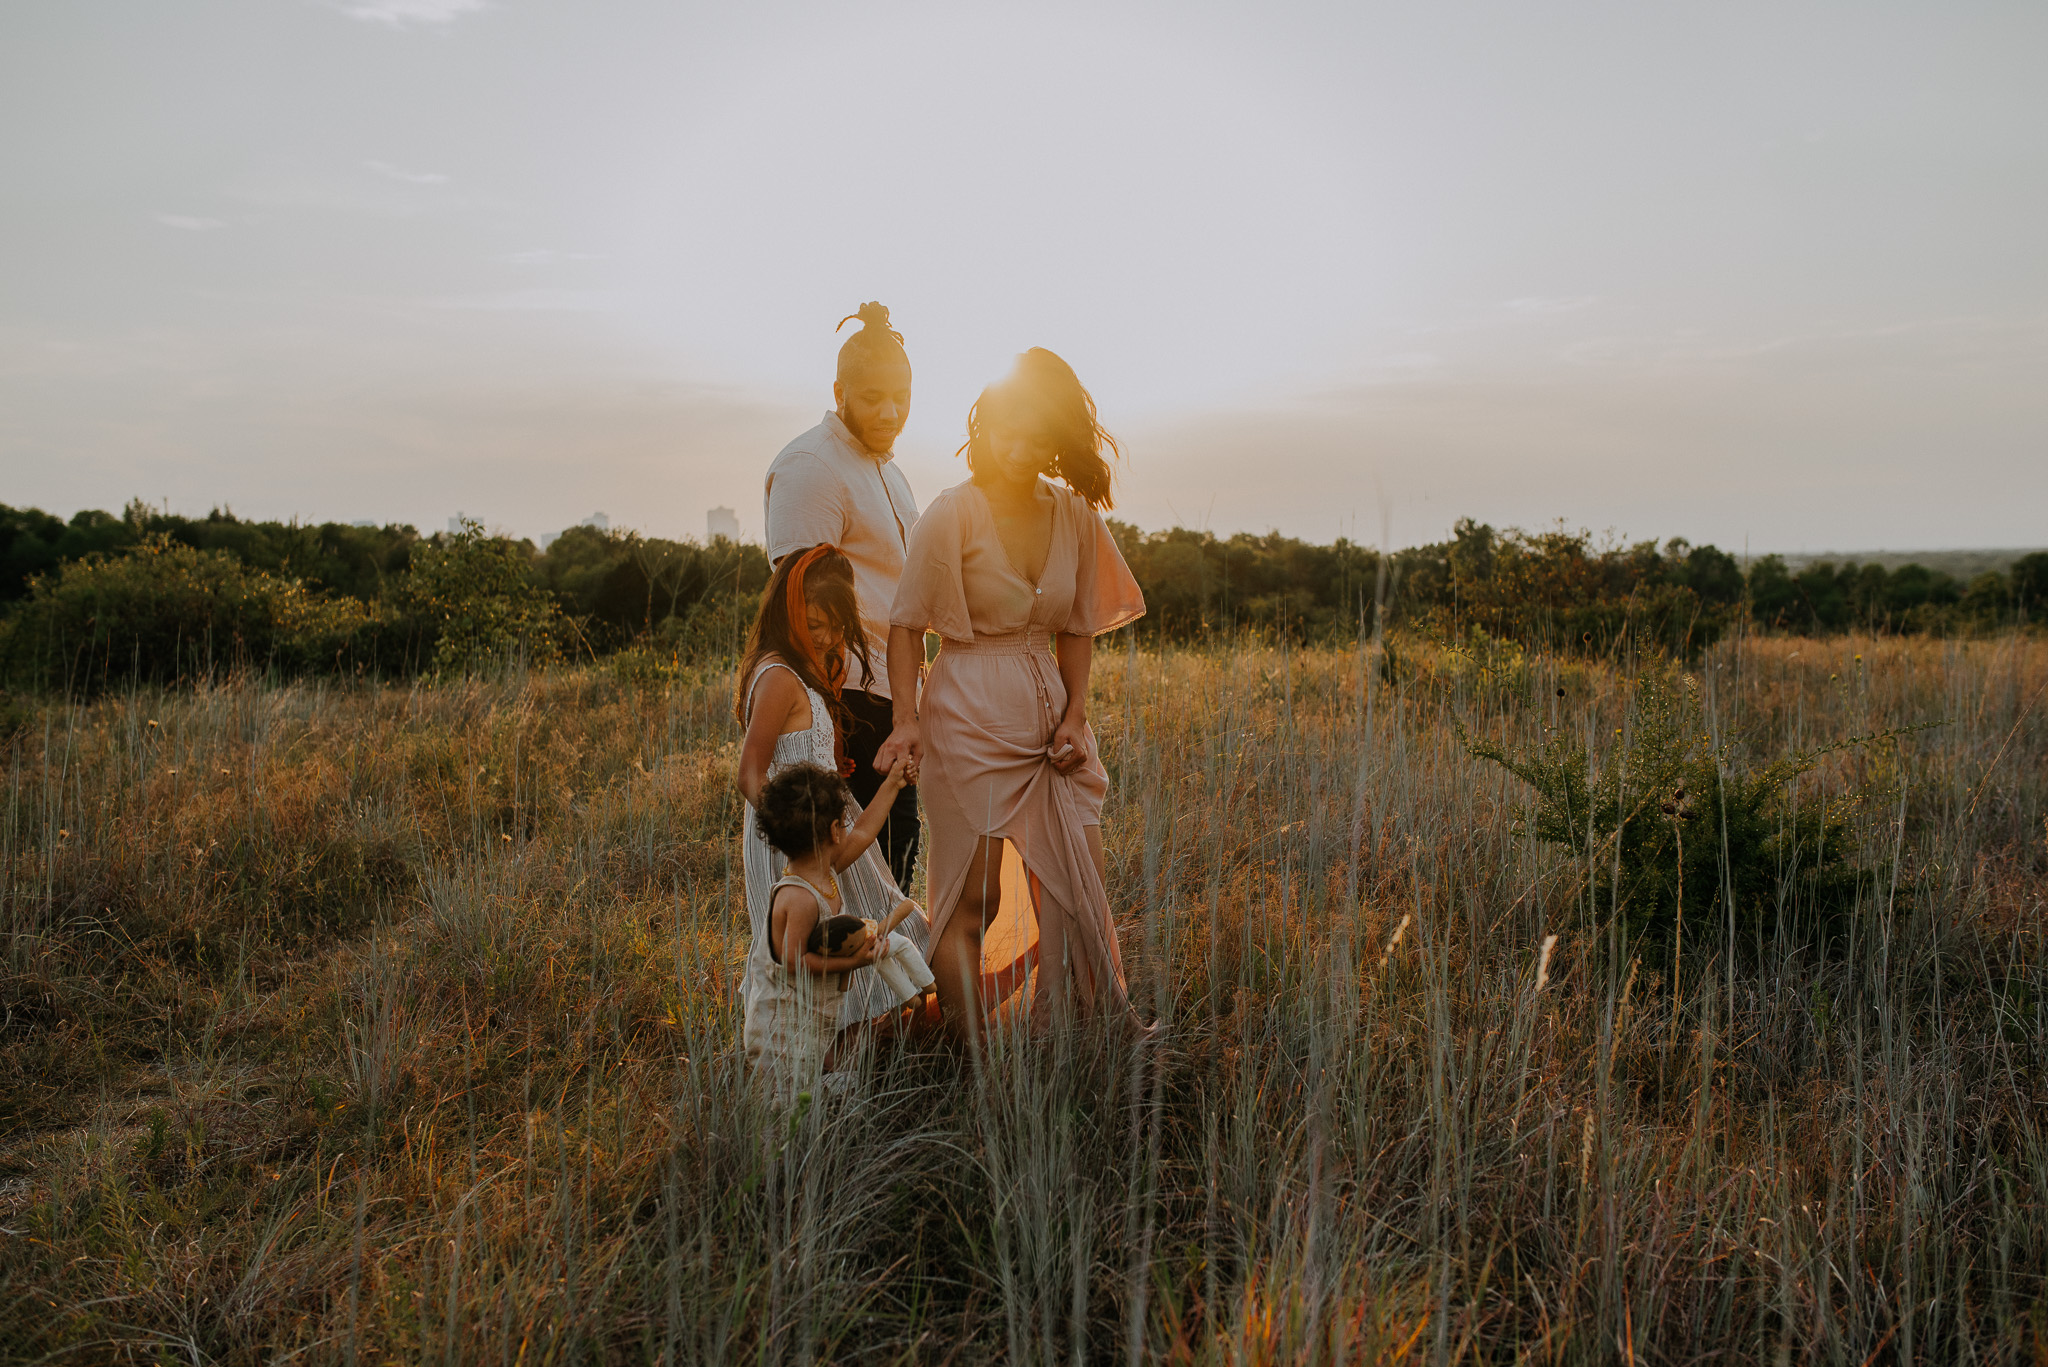 Jessi-marie-photography-dallas-fort-worth-texas-family-photographer-tandy-hills-natural-area-21